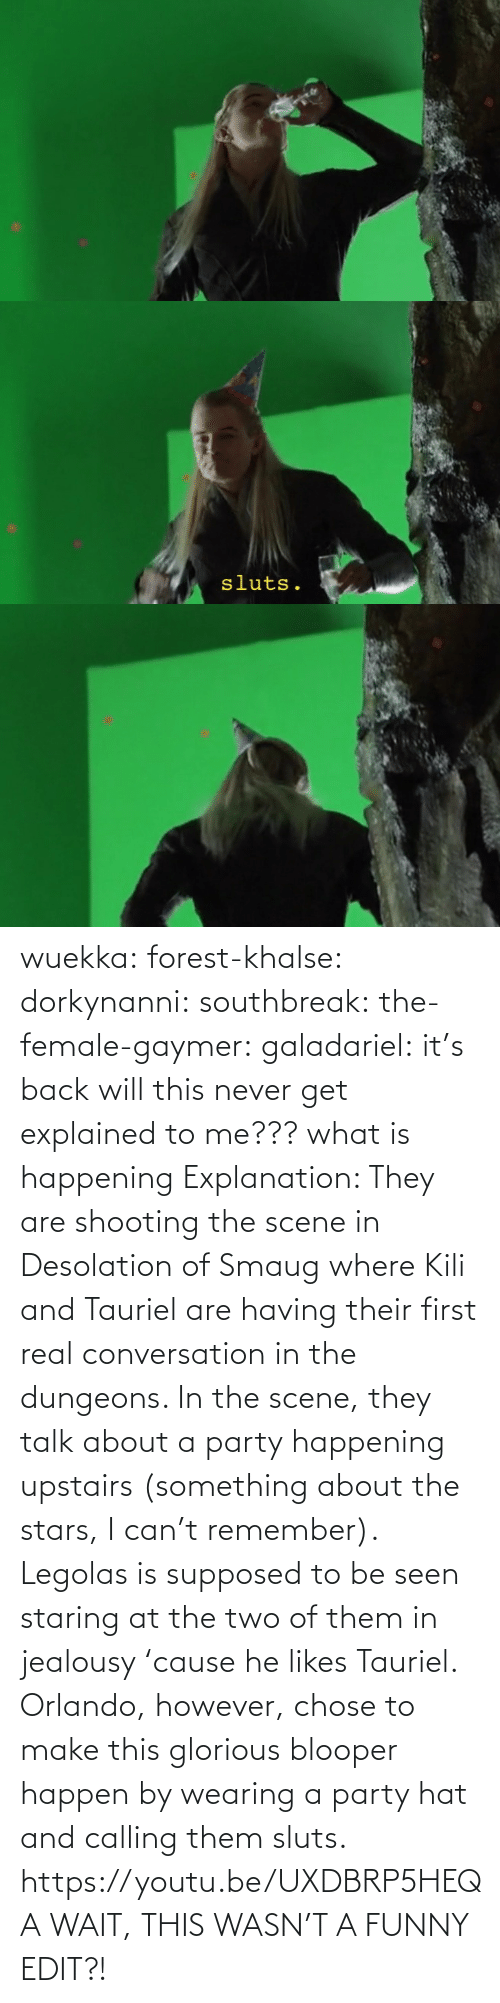 calling: wuekka: forest-khalse:   dorkynanni:  southbreak:   the-female-gaymer:   galadariel:  it's back   will this never get explained to me???    what is happening    Explanation:  They are shooting the scene in Desolation of Smaug where Kili and Tauriel are having their first real conversation in the dungeons.  In the scene, they talk about a party happening upstairs (something about the stars, I can't remember). Legolas is supposed to be seen staring at the two of them in jealousy 'cause he likes Tauriel.  Orlando, however, chose to make this glorious blooper happen by wearing a party hat and calling them sluts.    https://youtu.be/UXDBRP5HEQA    WAIT, THIS WASN'T A FUNNY EDIT?!